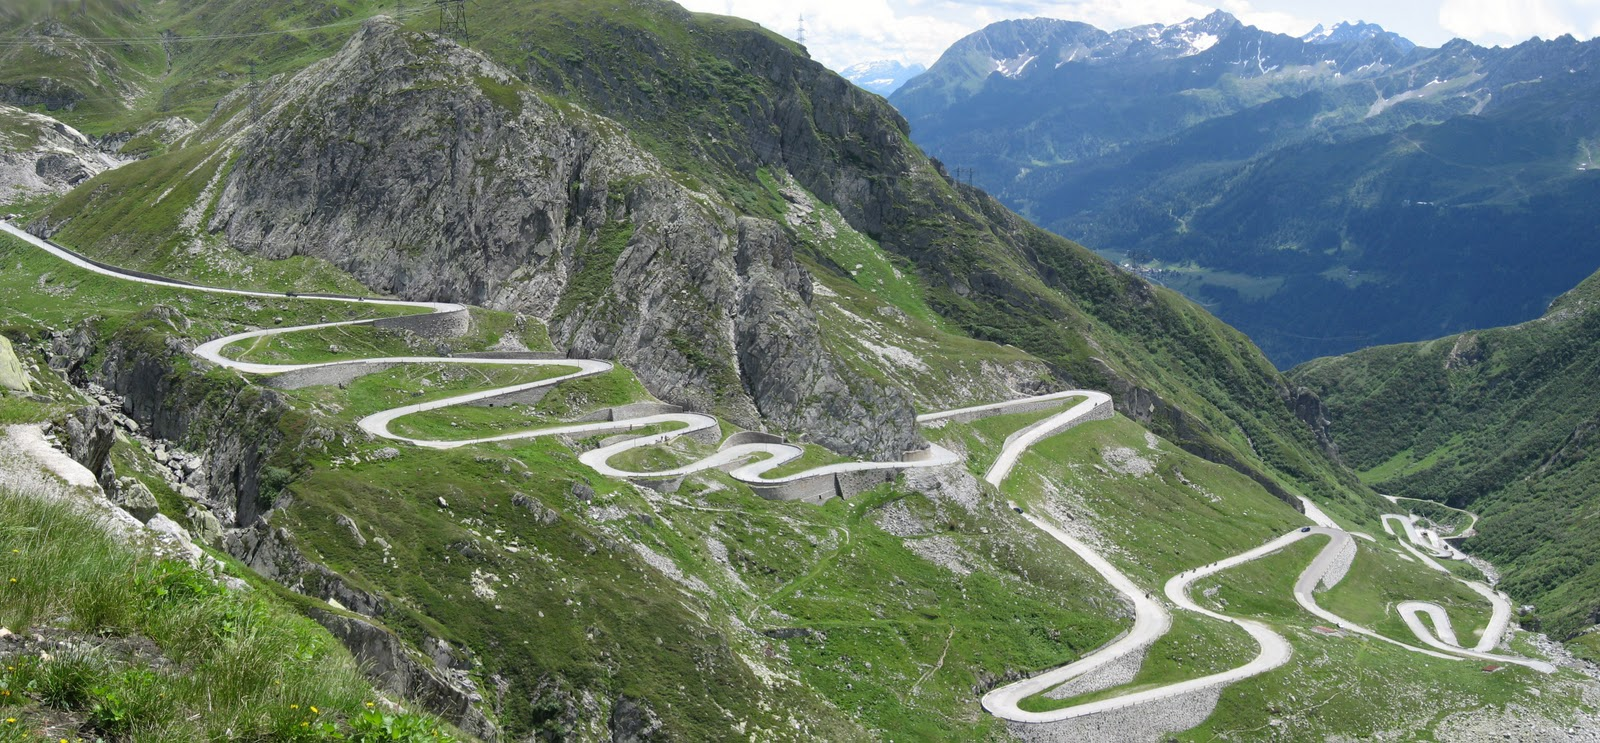 1000+ images about The Long and Winding Road on Pinterest.